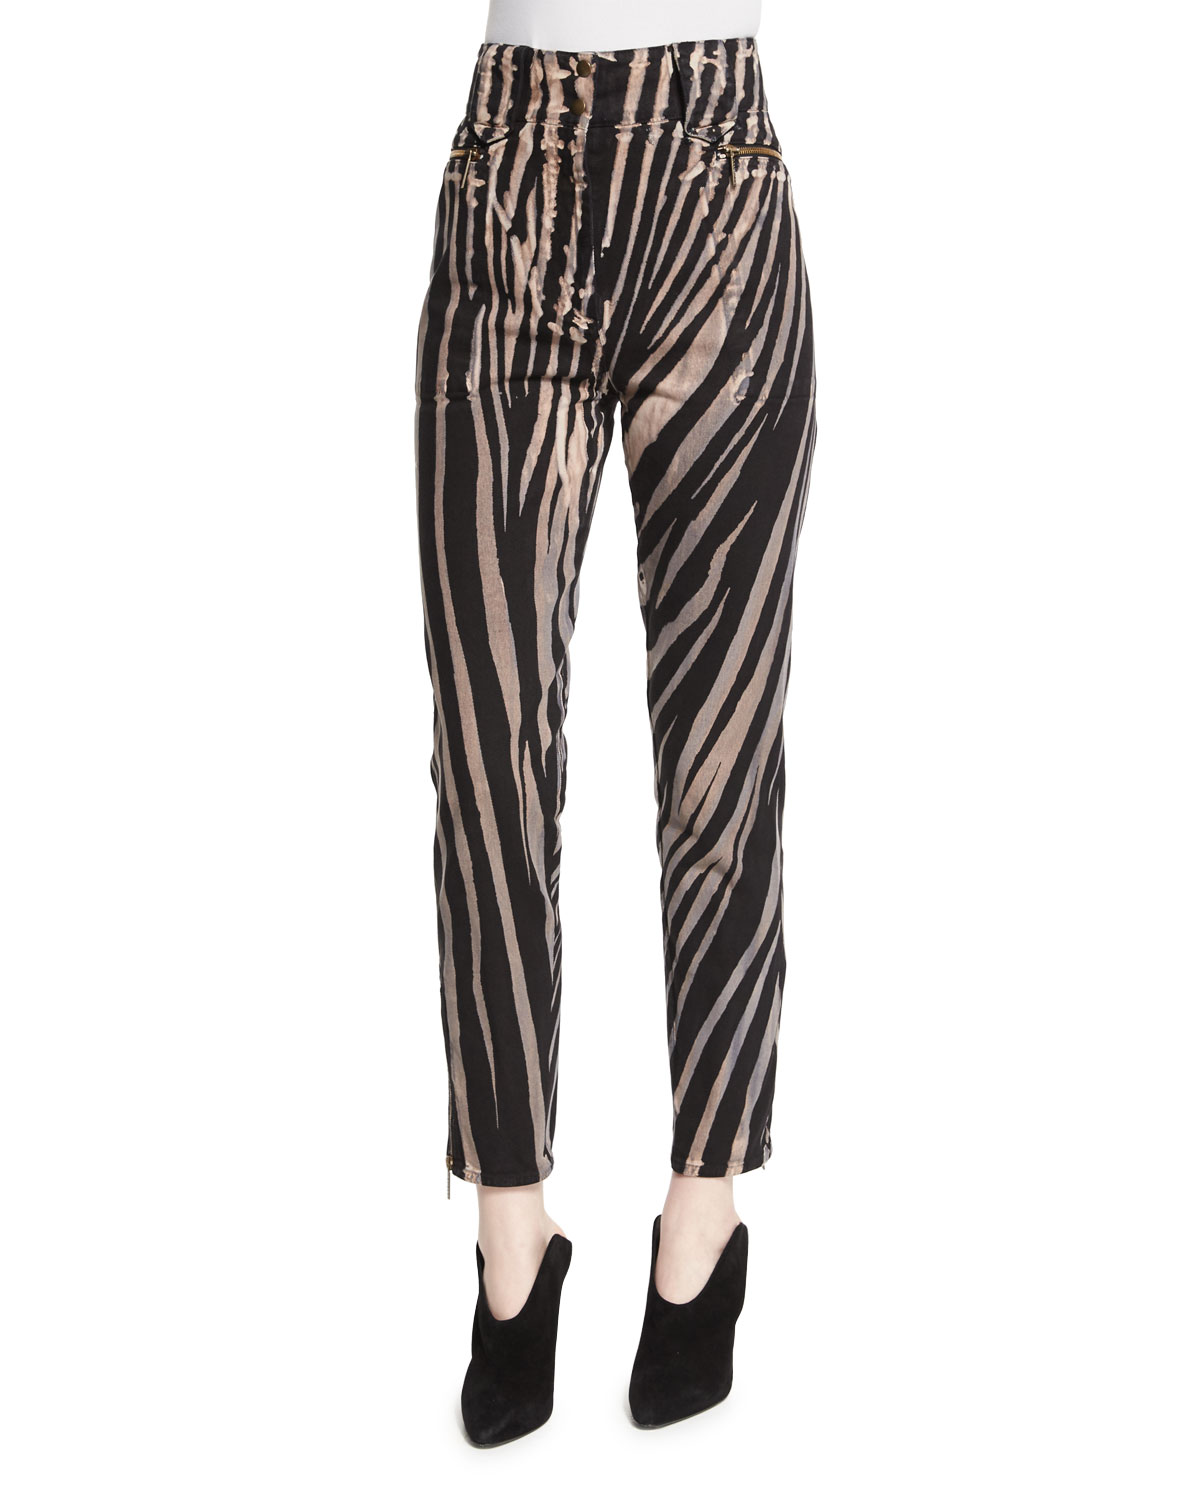 High-Waist Zebra-Print Ankle Pants, Black Pattern